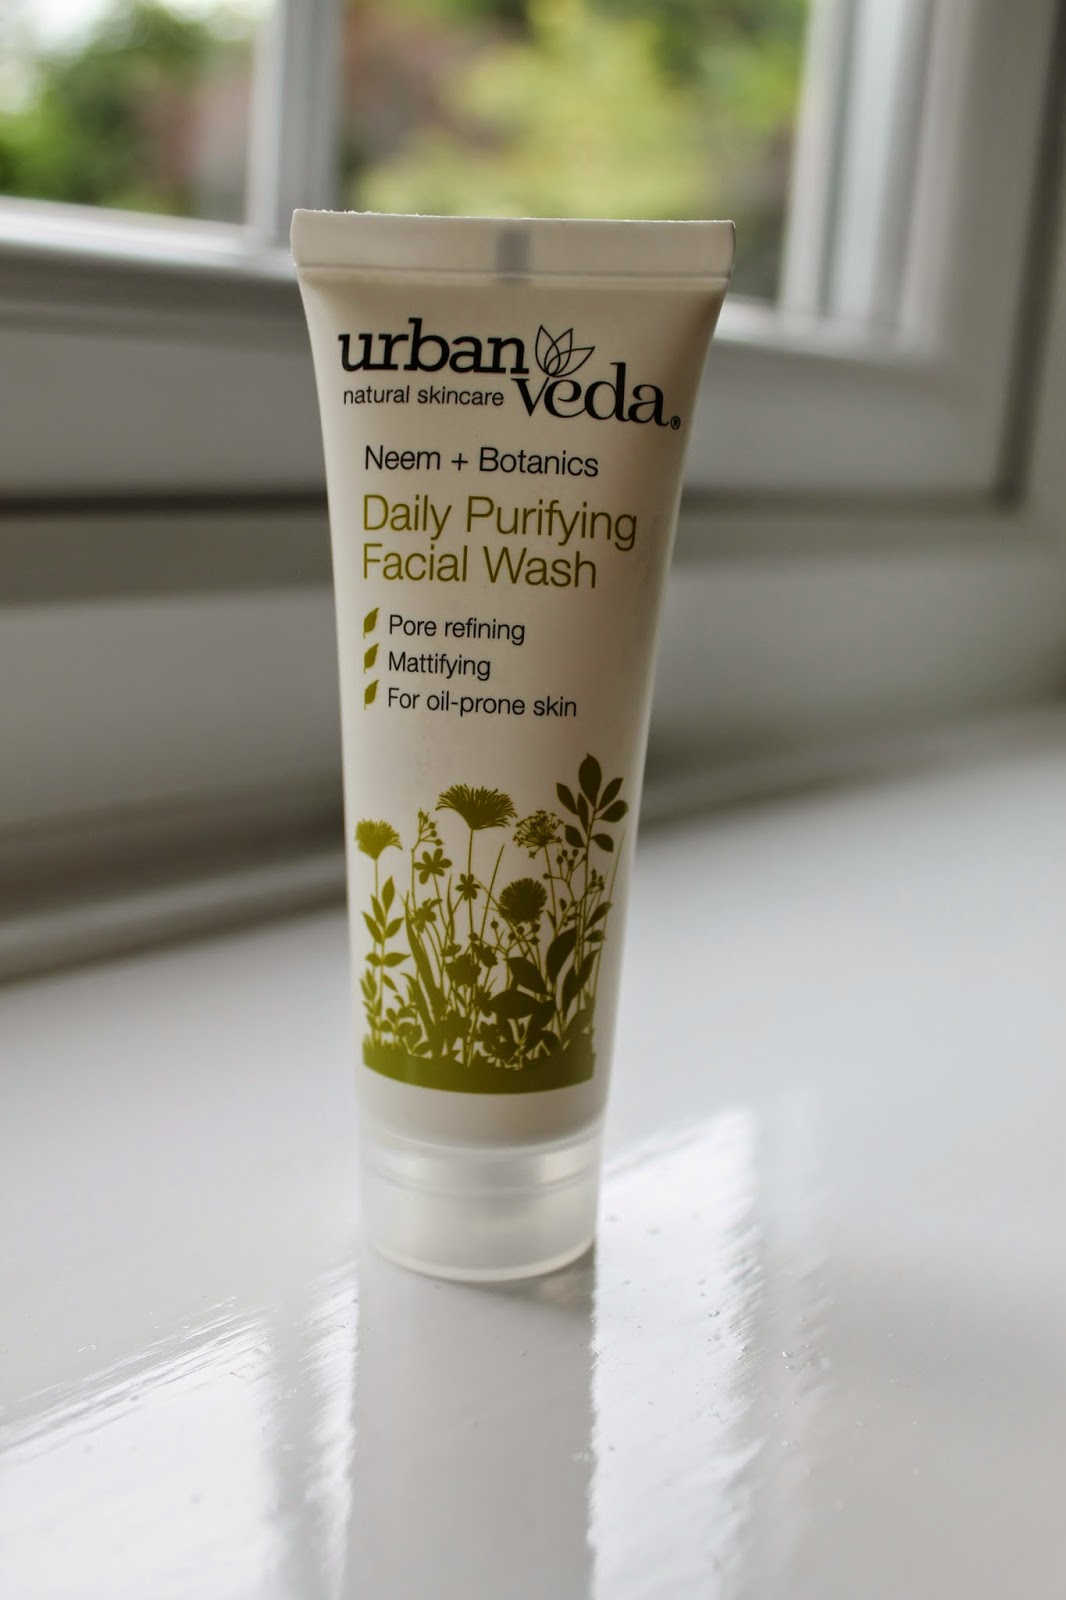 Love Me Beauty Box June 2014 Urban Veda Purifying Daily Facial Wash